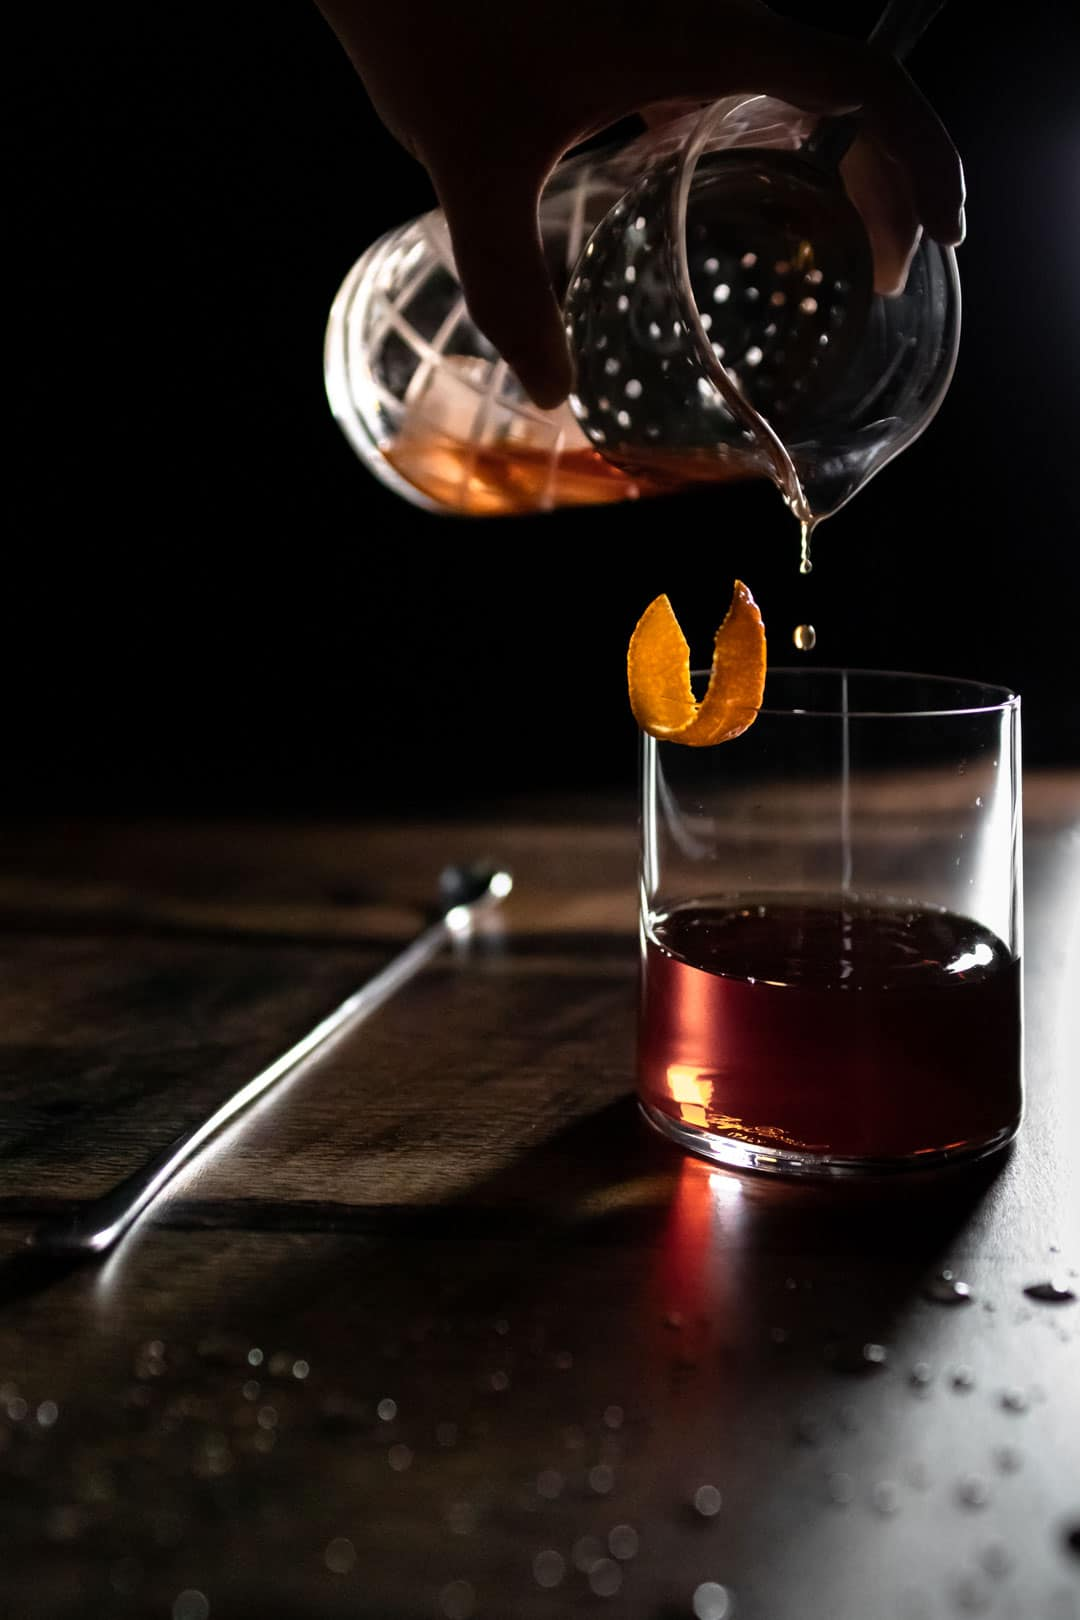 The last drops of a Cynar toronto cocktail being poured from a yari into an old fashioned glass garnished with an orange peel. The glass is next to a long bar spoon and droplets of water on the table.